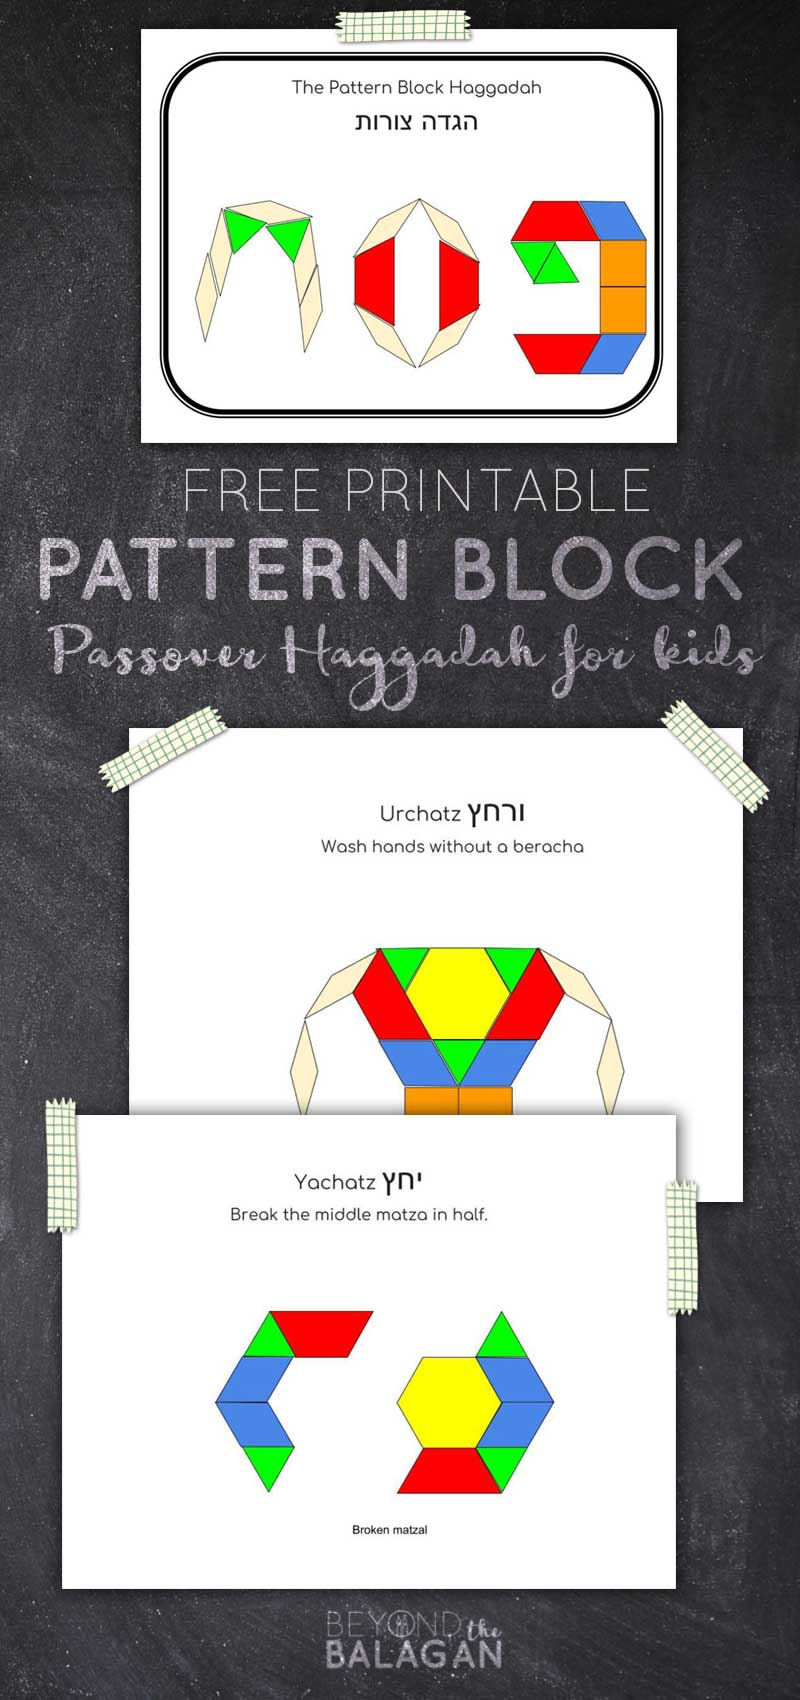 Click to download a free printable Haggadah for toddlers - this fun passover haggadah uses pattern blocks to teach young children about Passover Pesach and Jewish holidays